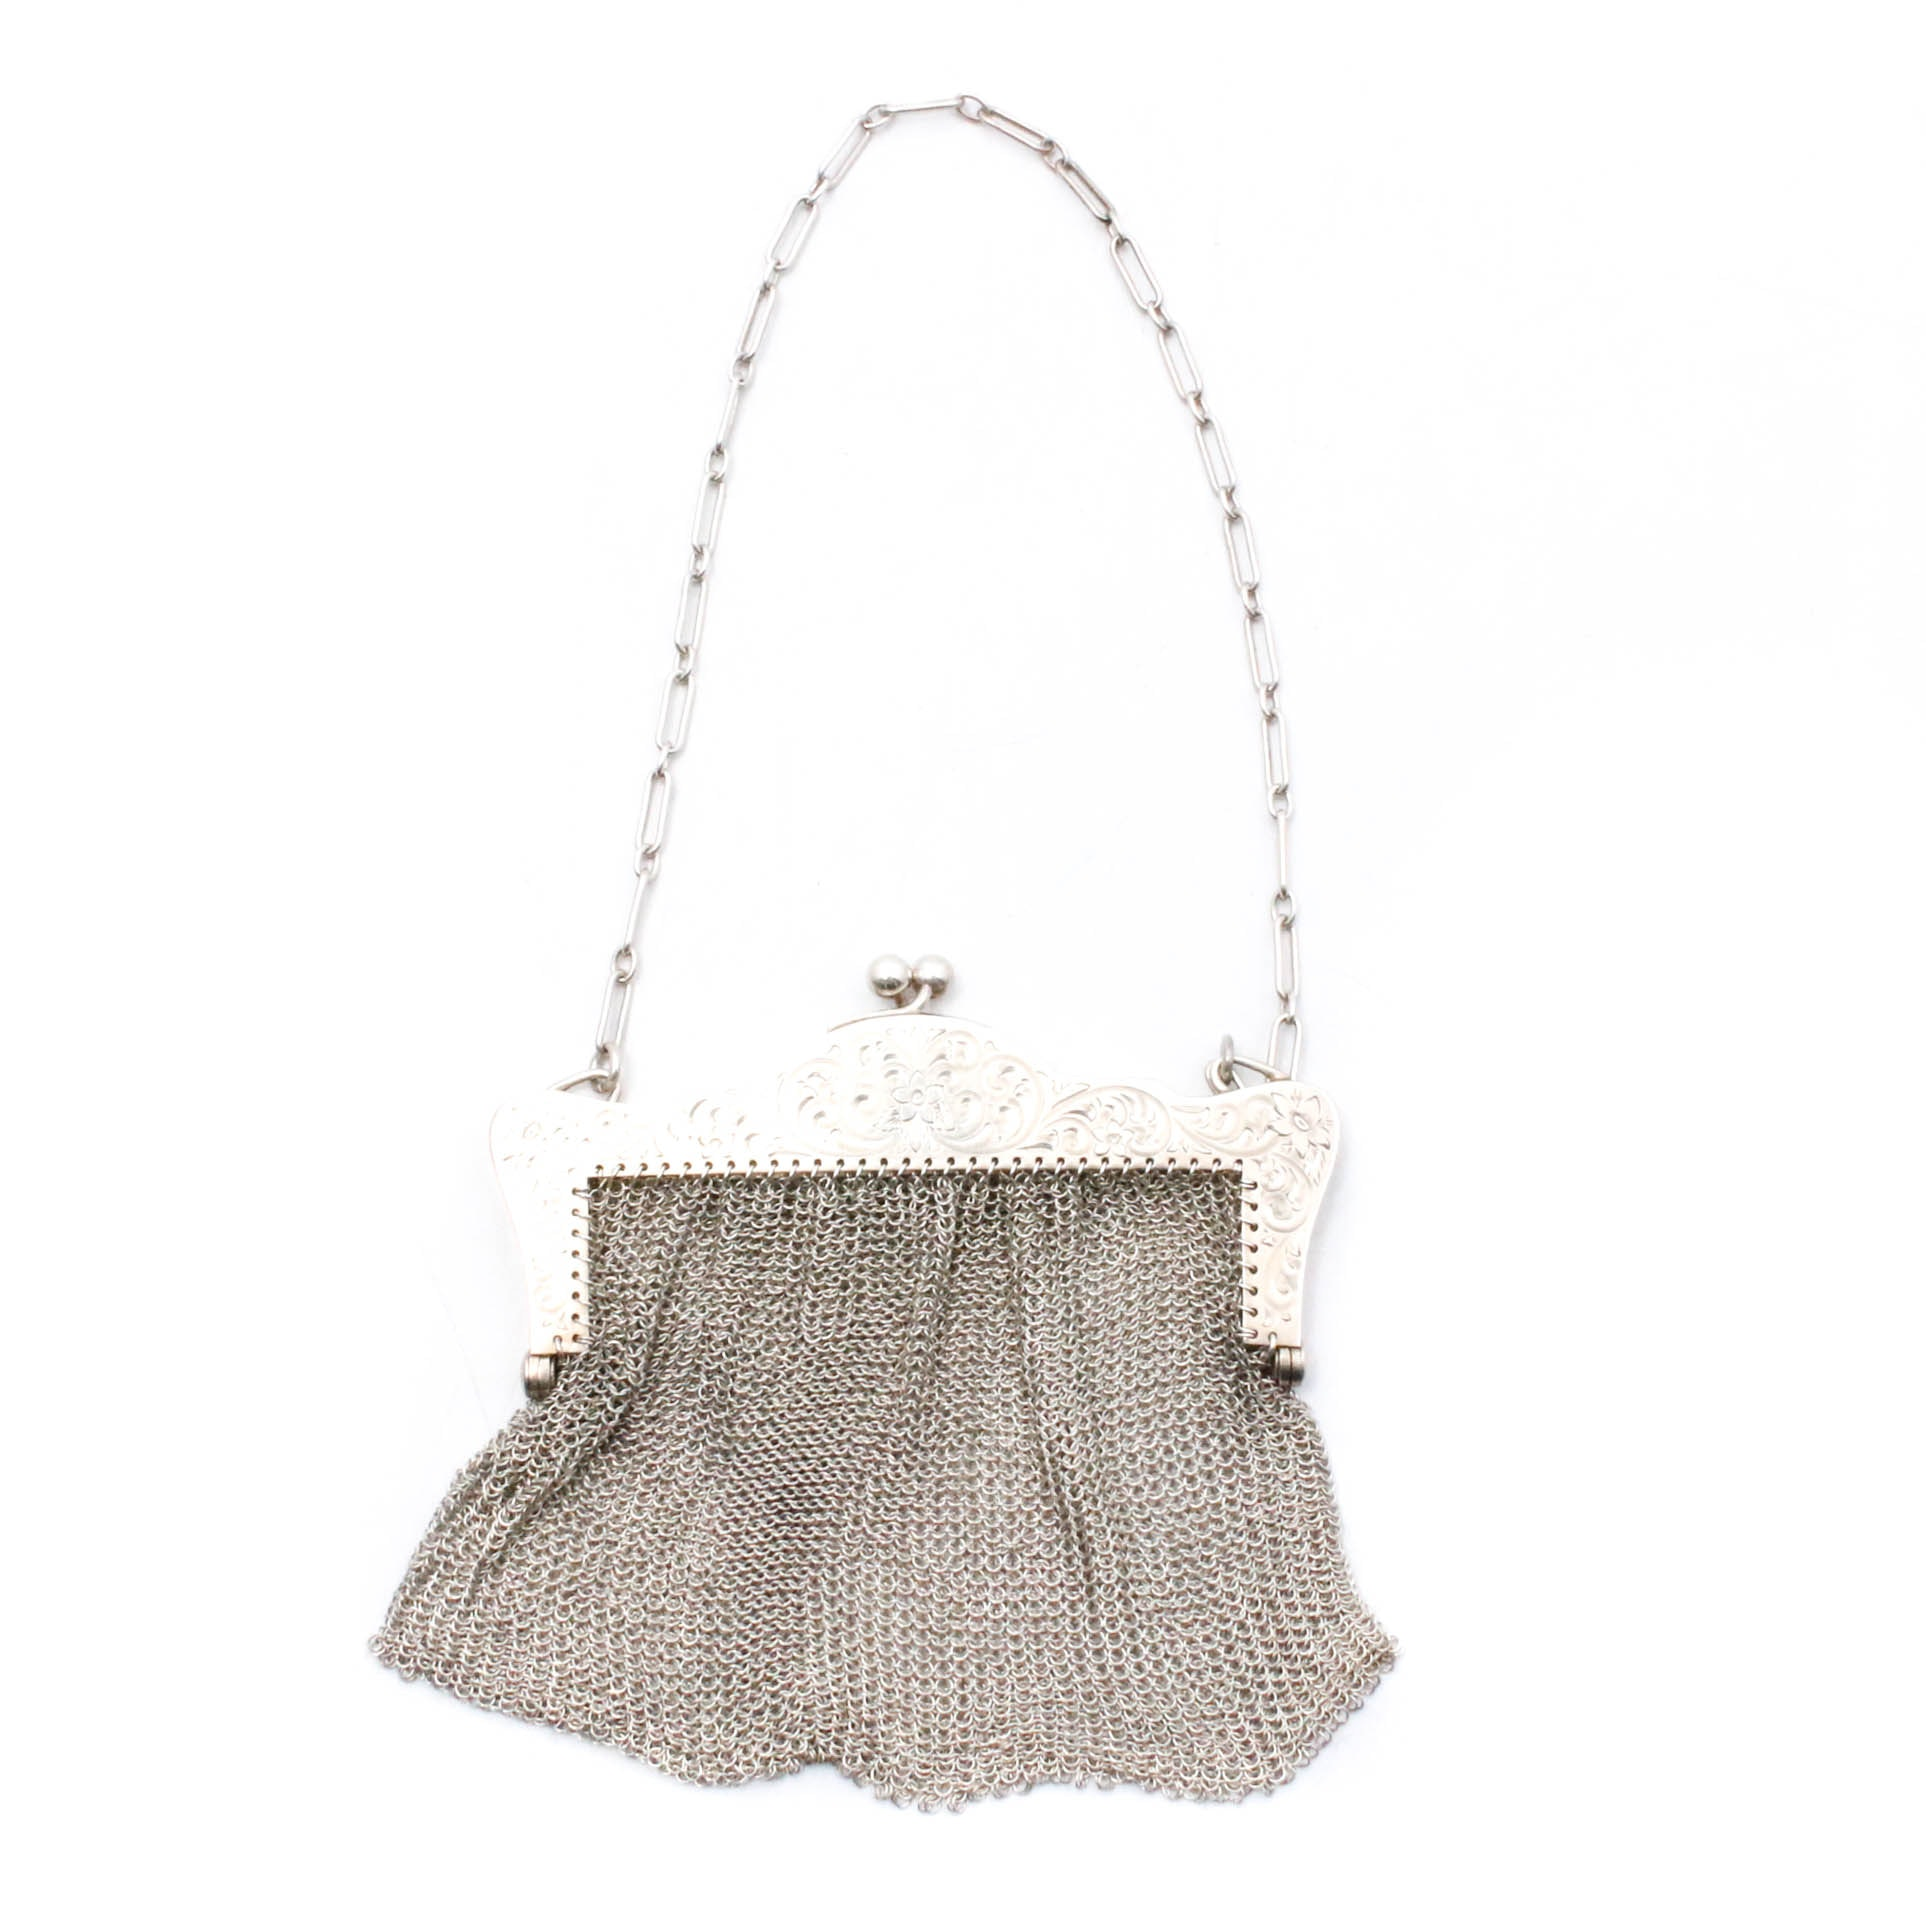 Sterling Silver Chain Link Mesh Frame Purse, Early 20th Century